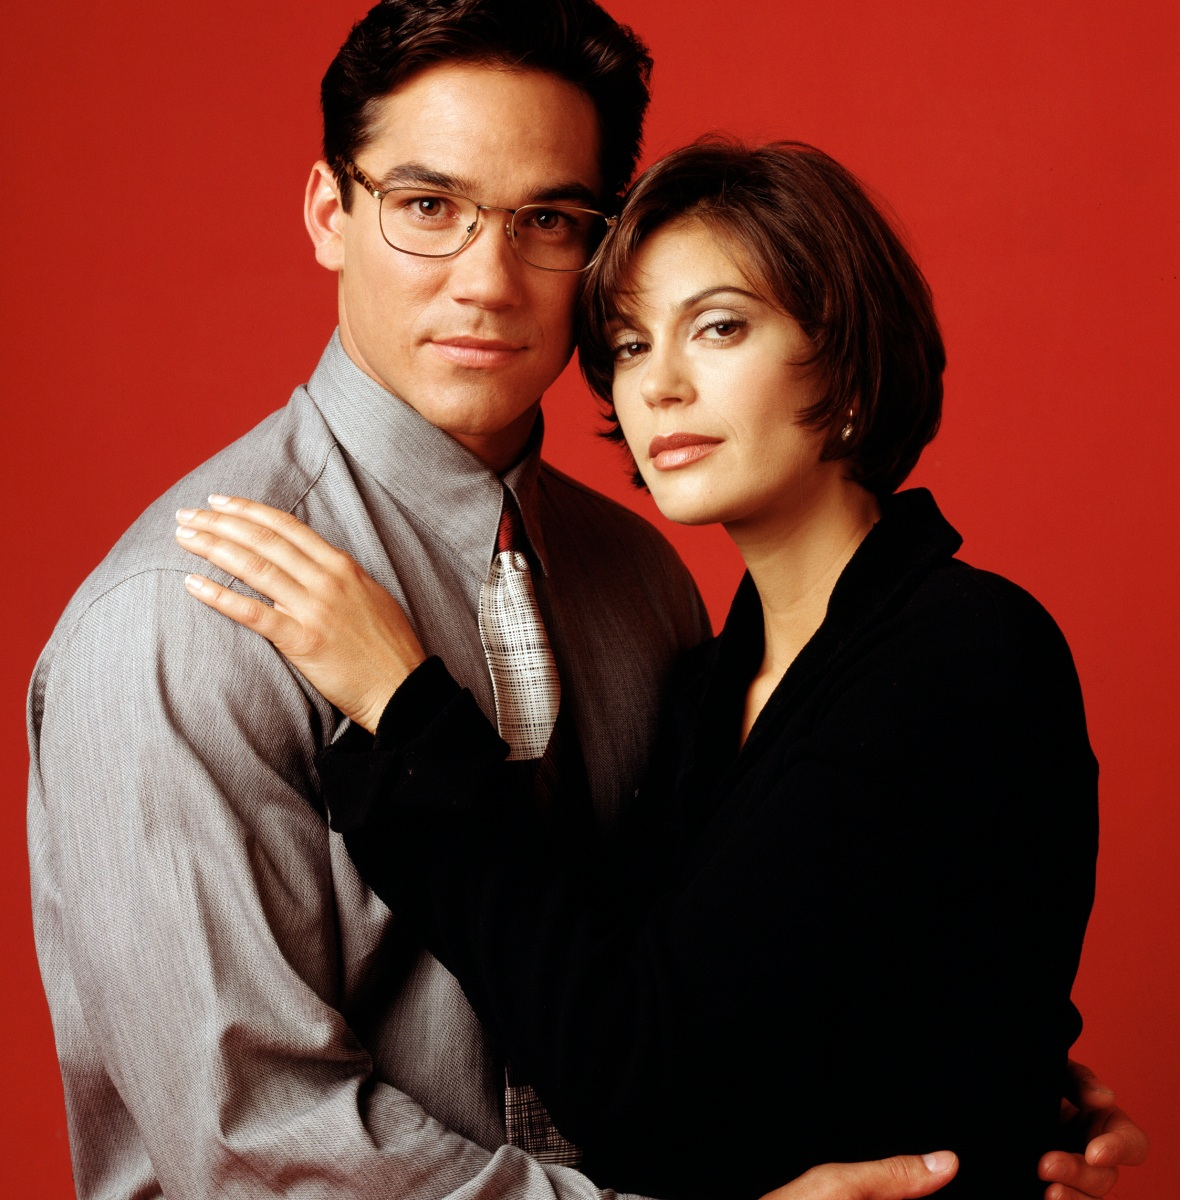 'lois & clark' getty images